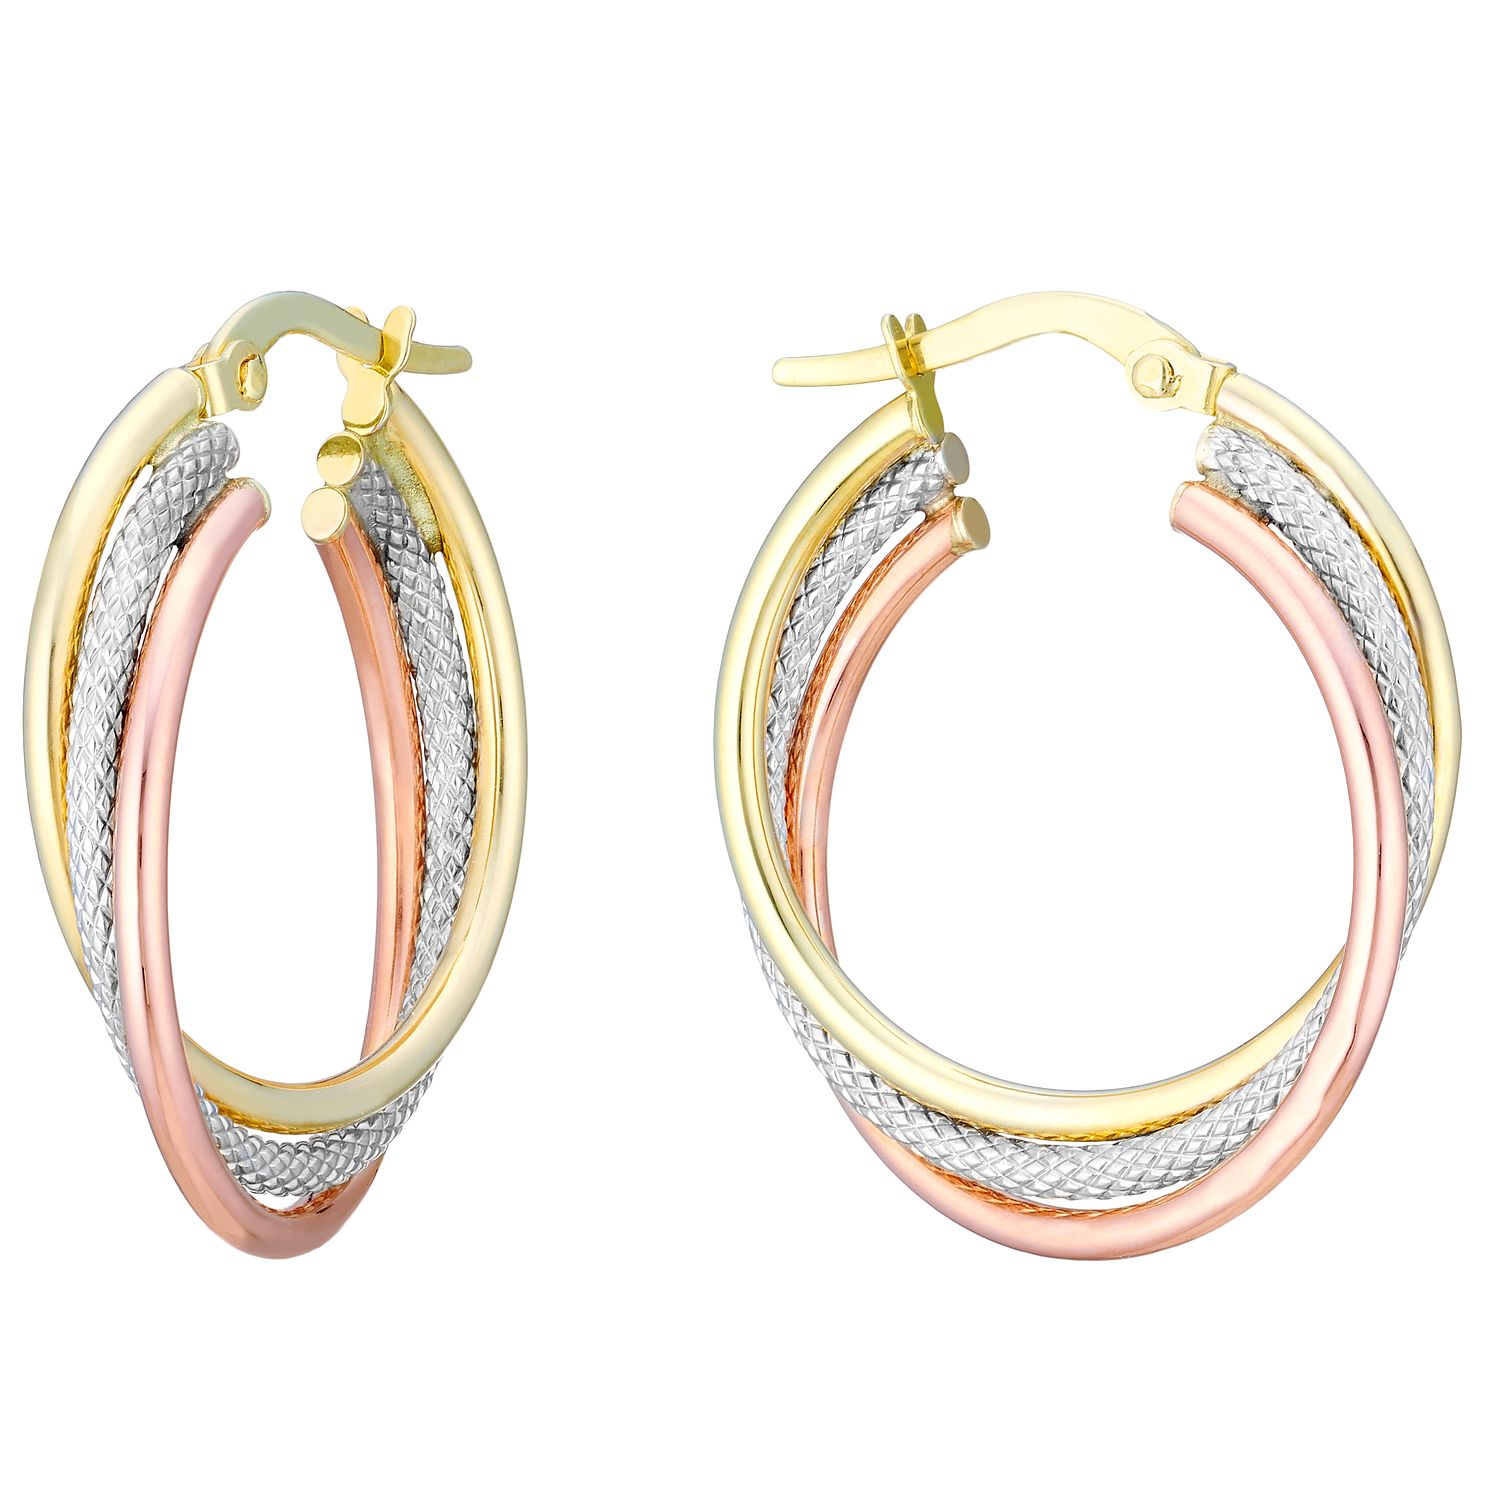 9ct 3 Colour Gold 3 Row 20mm Hoop Earrings - Product number 3727912